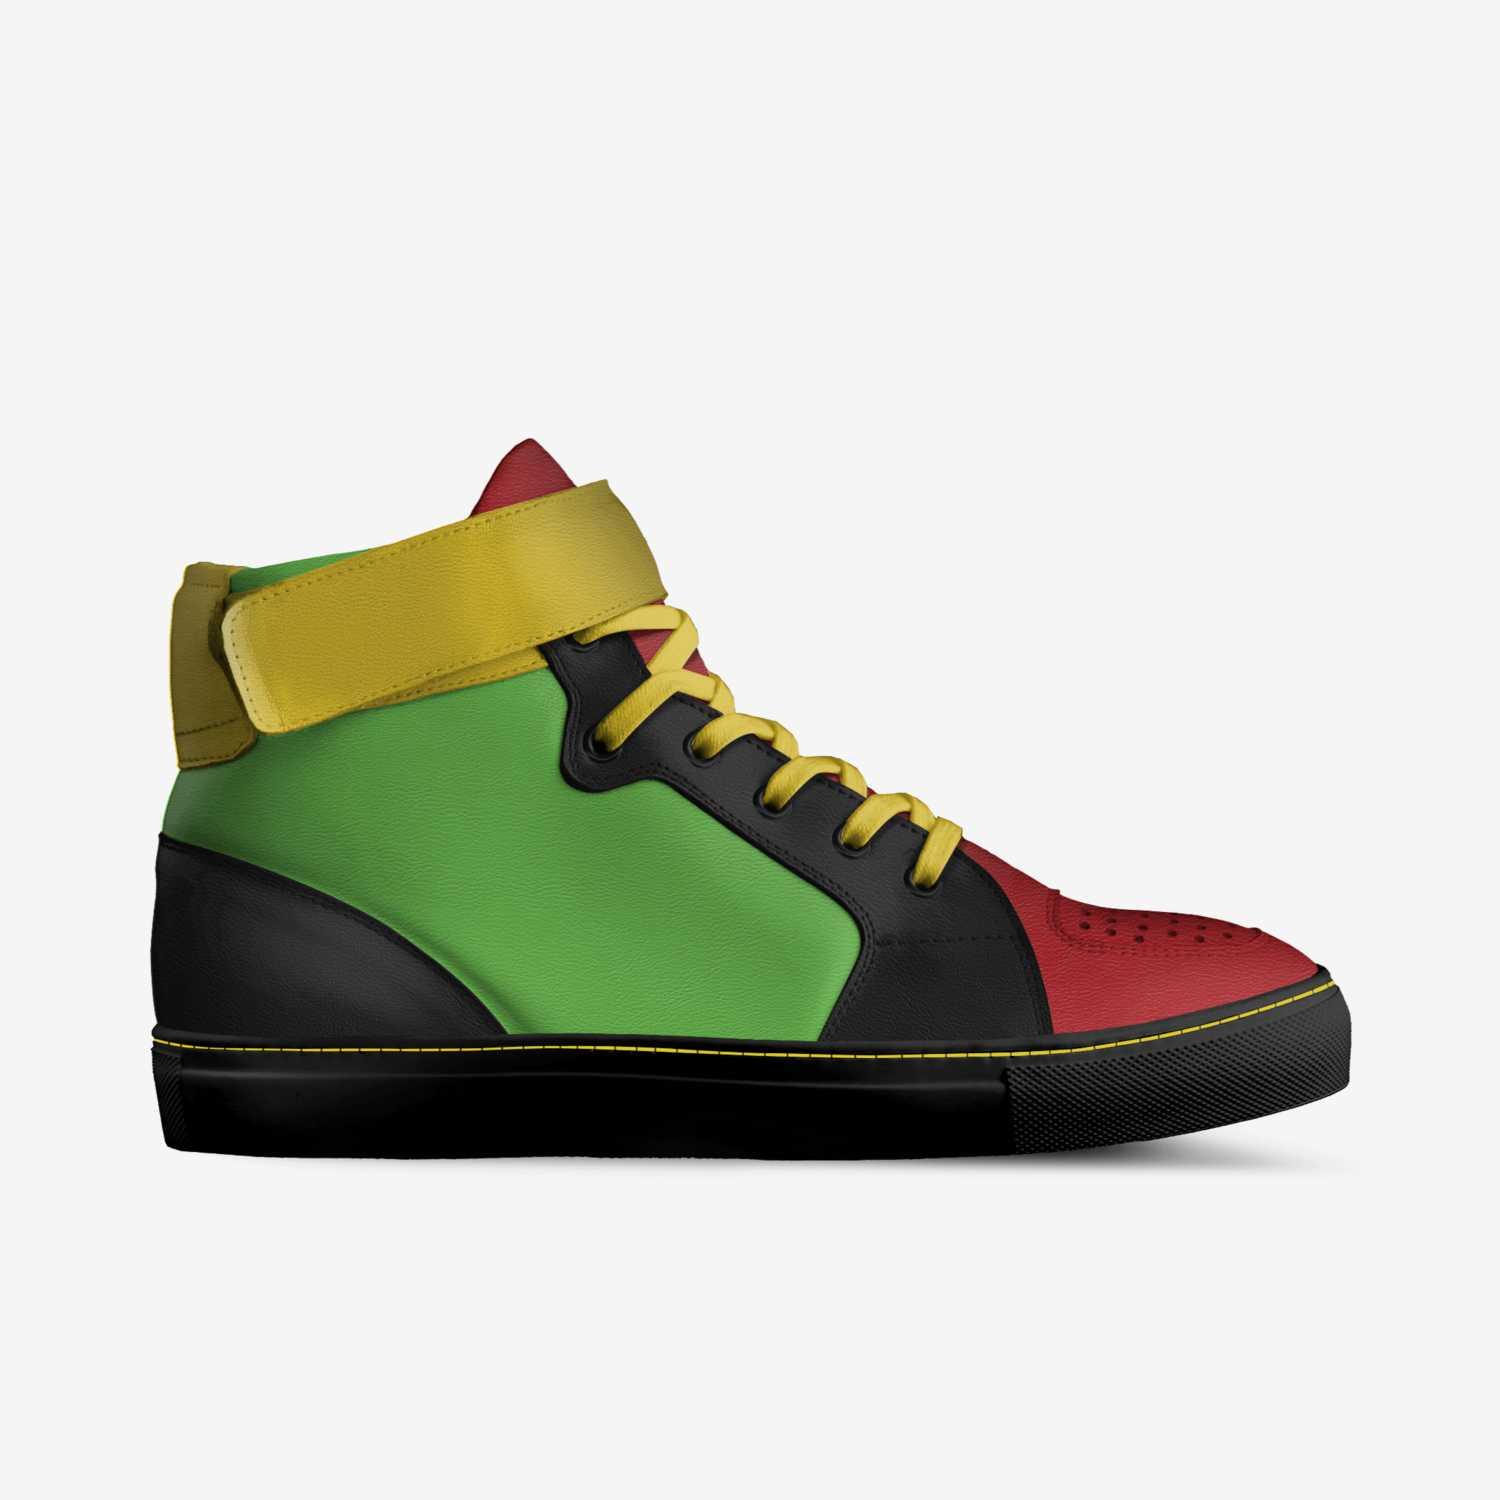 420 custom made in Italy shoes by Katherine Williams | Side view